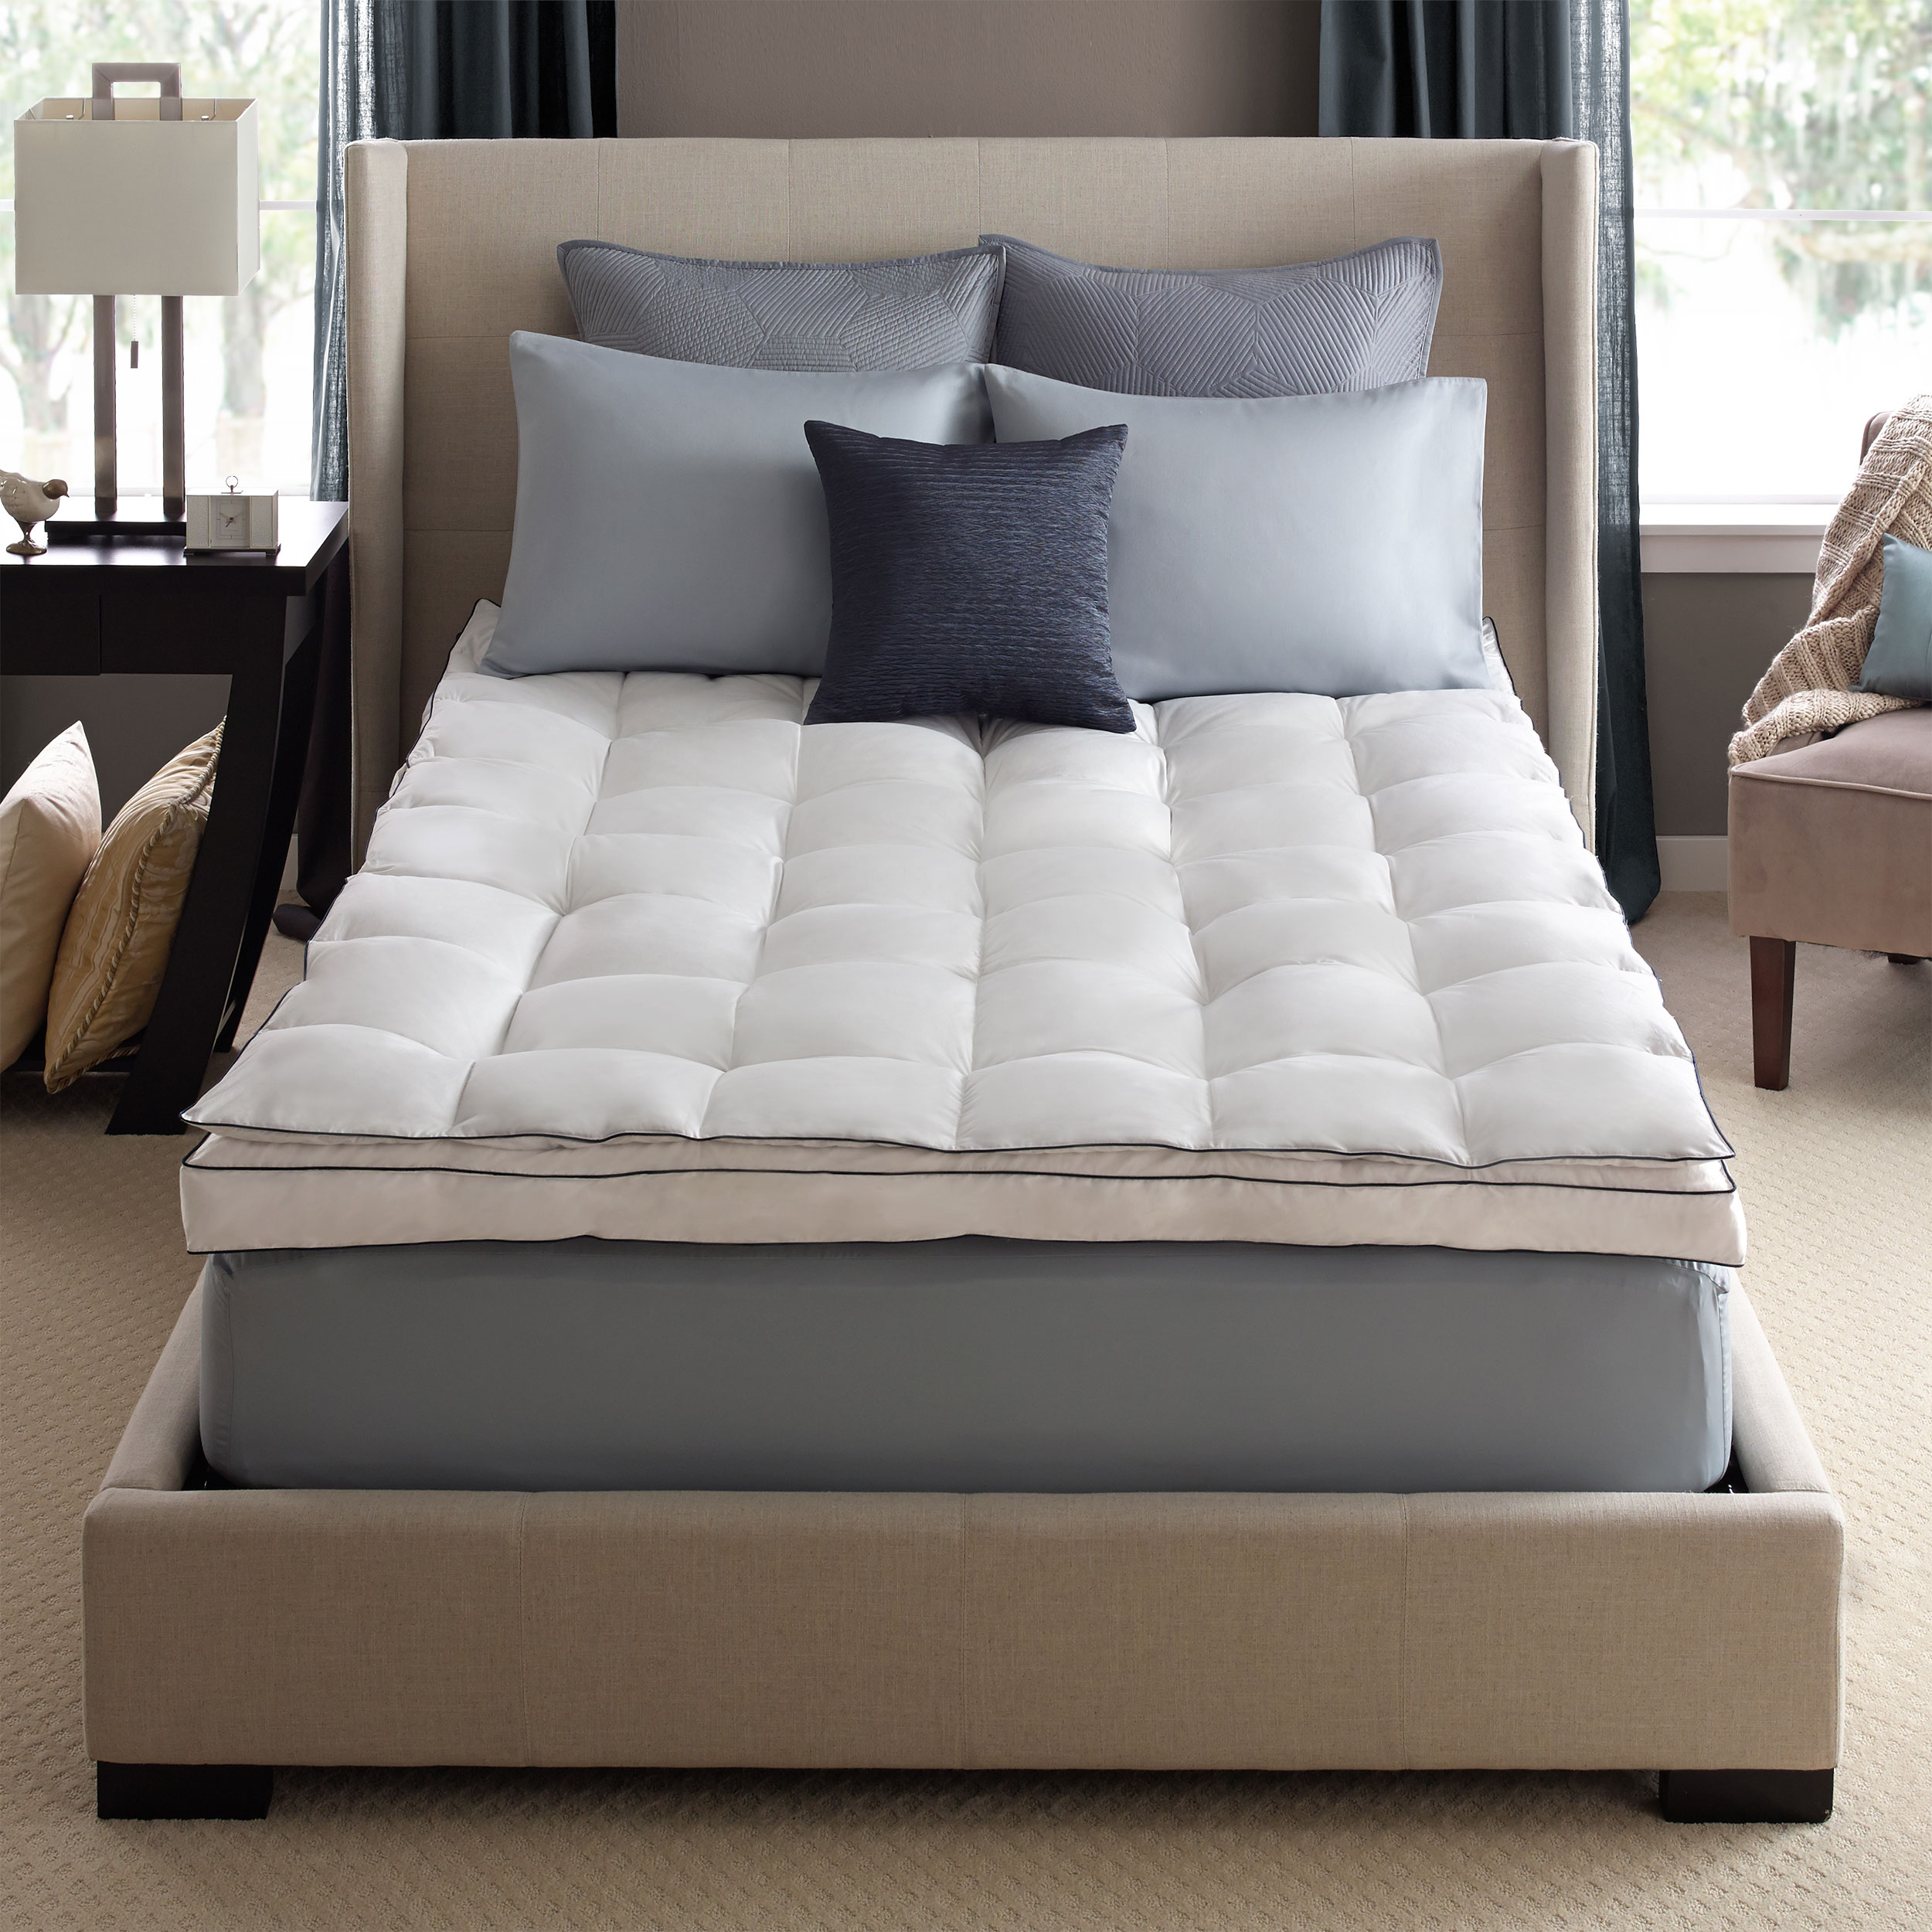 Pacific Coast® Online Bedding Stores Feather Beds